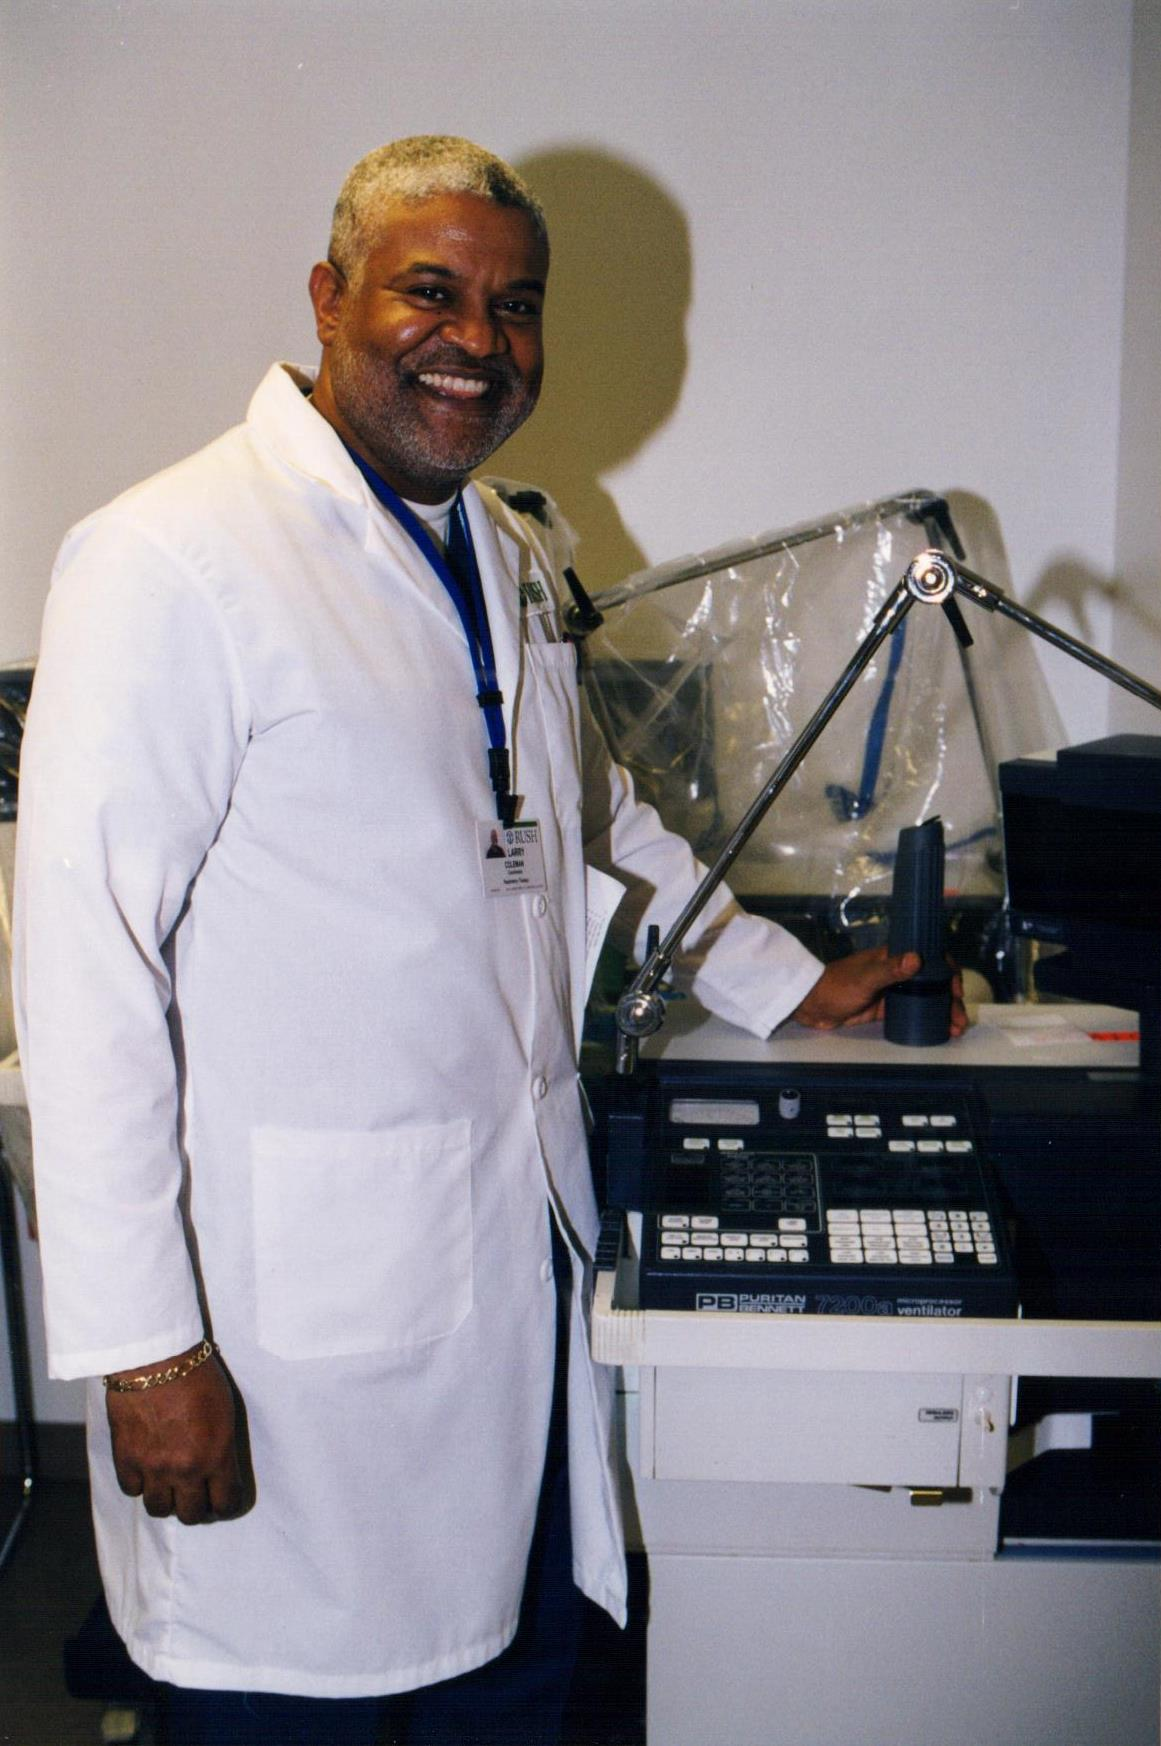 New Year's Eve at Rush, 1999, Larry Coleman, RRT